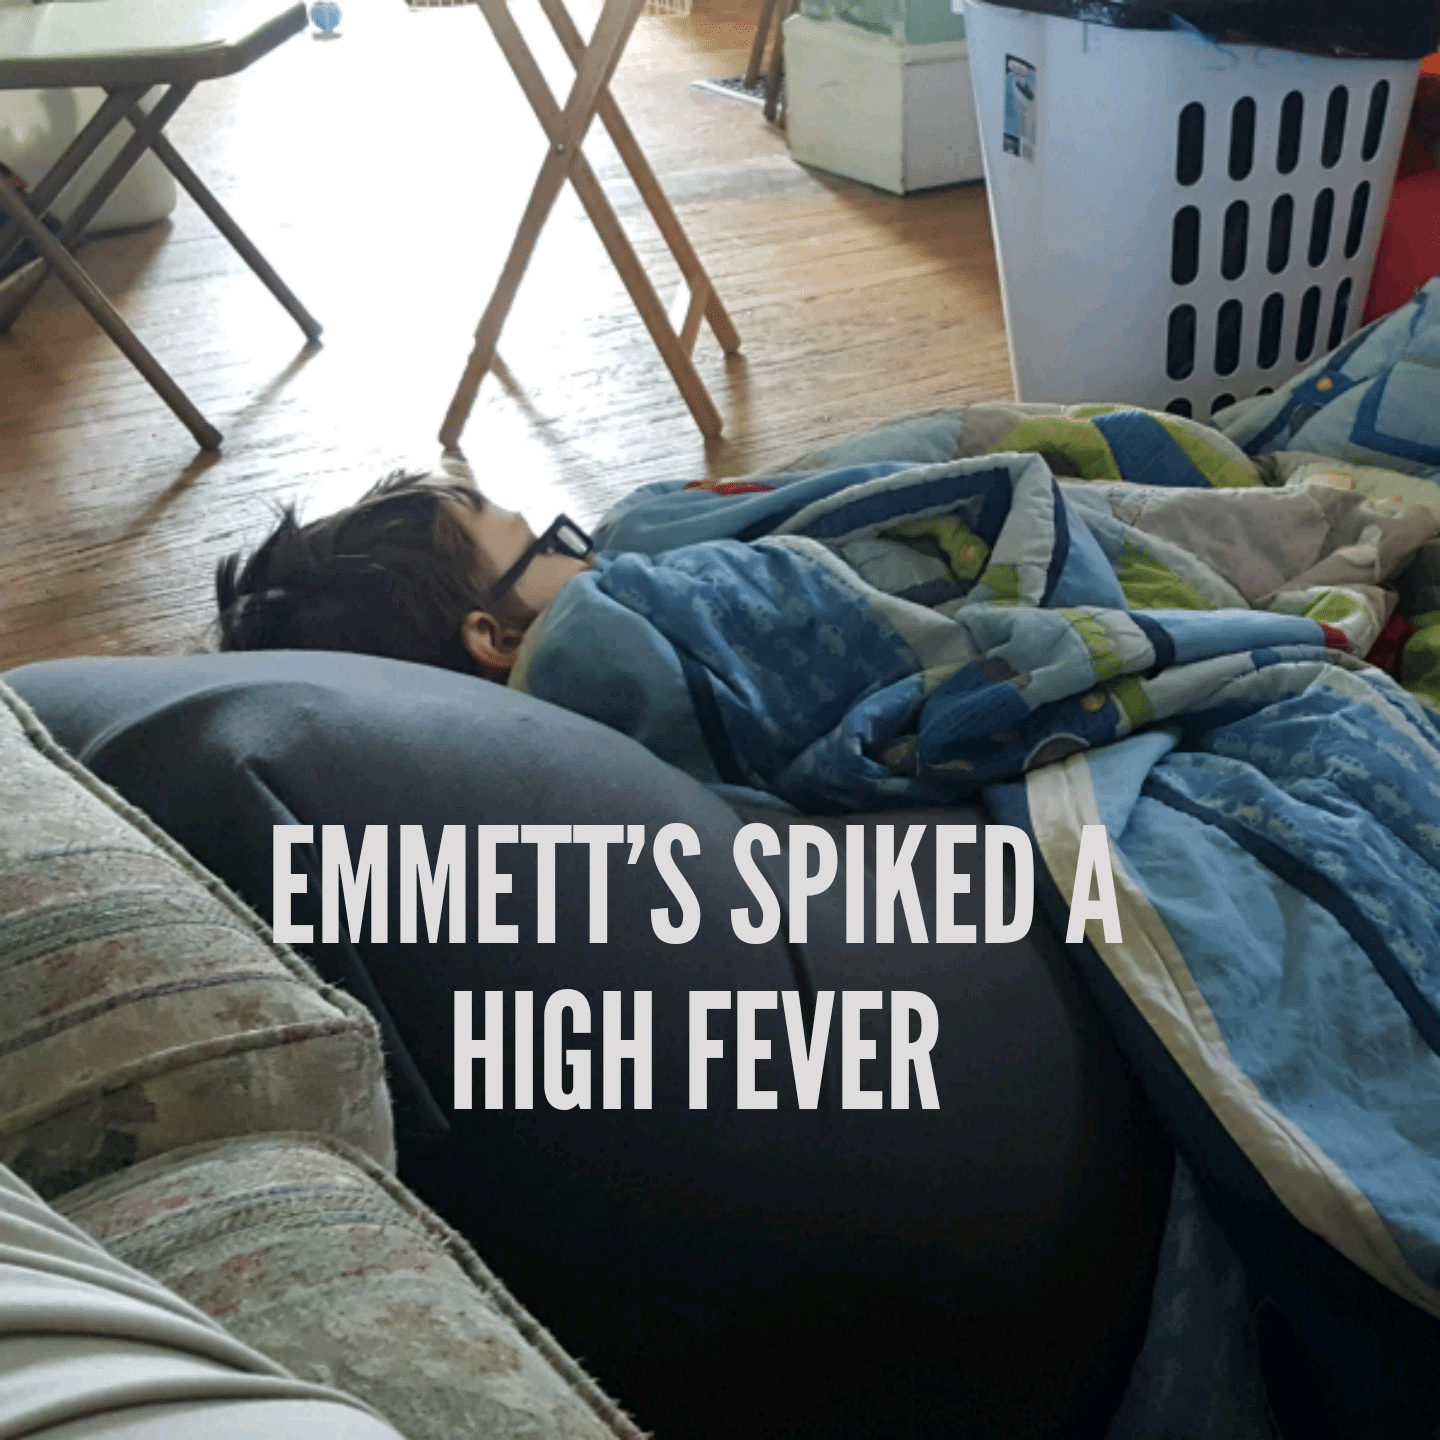 Emmett's spiked a high fever